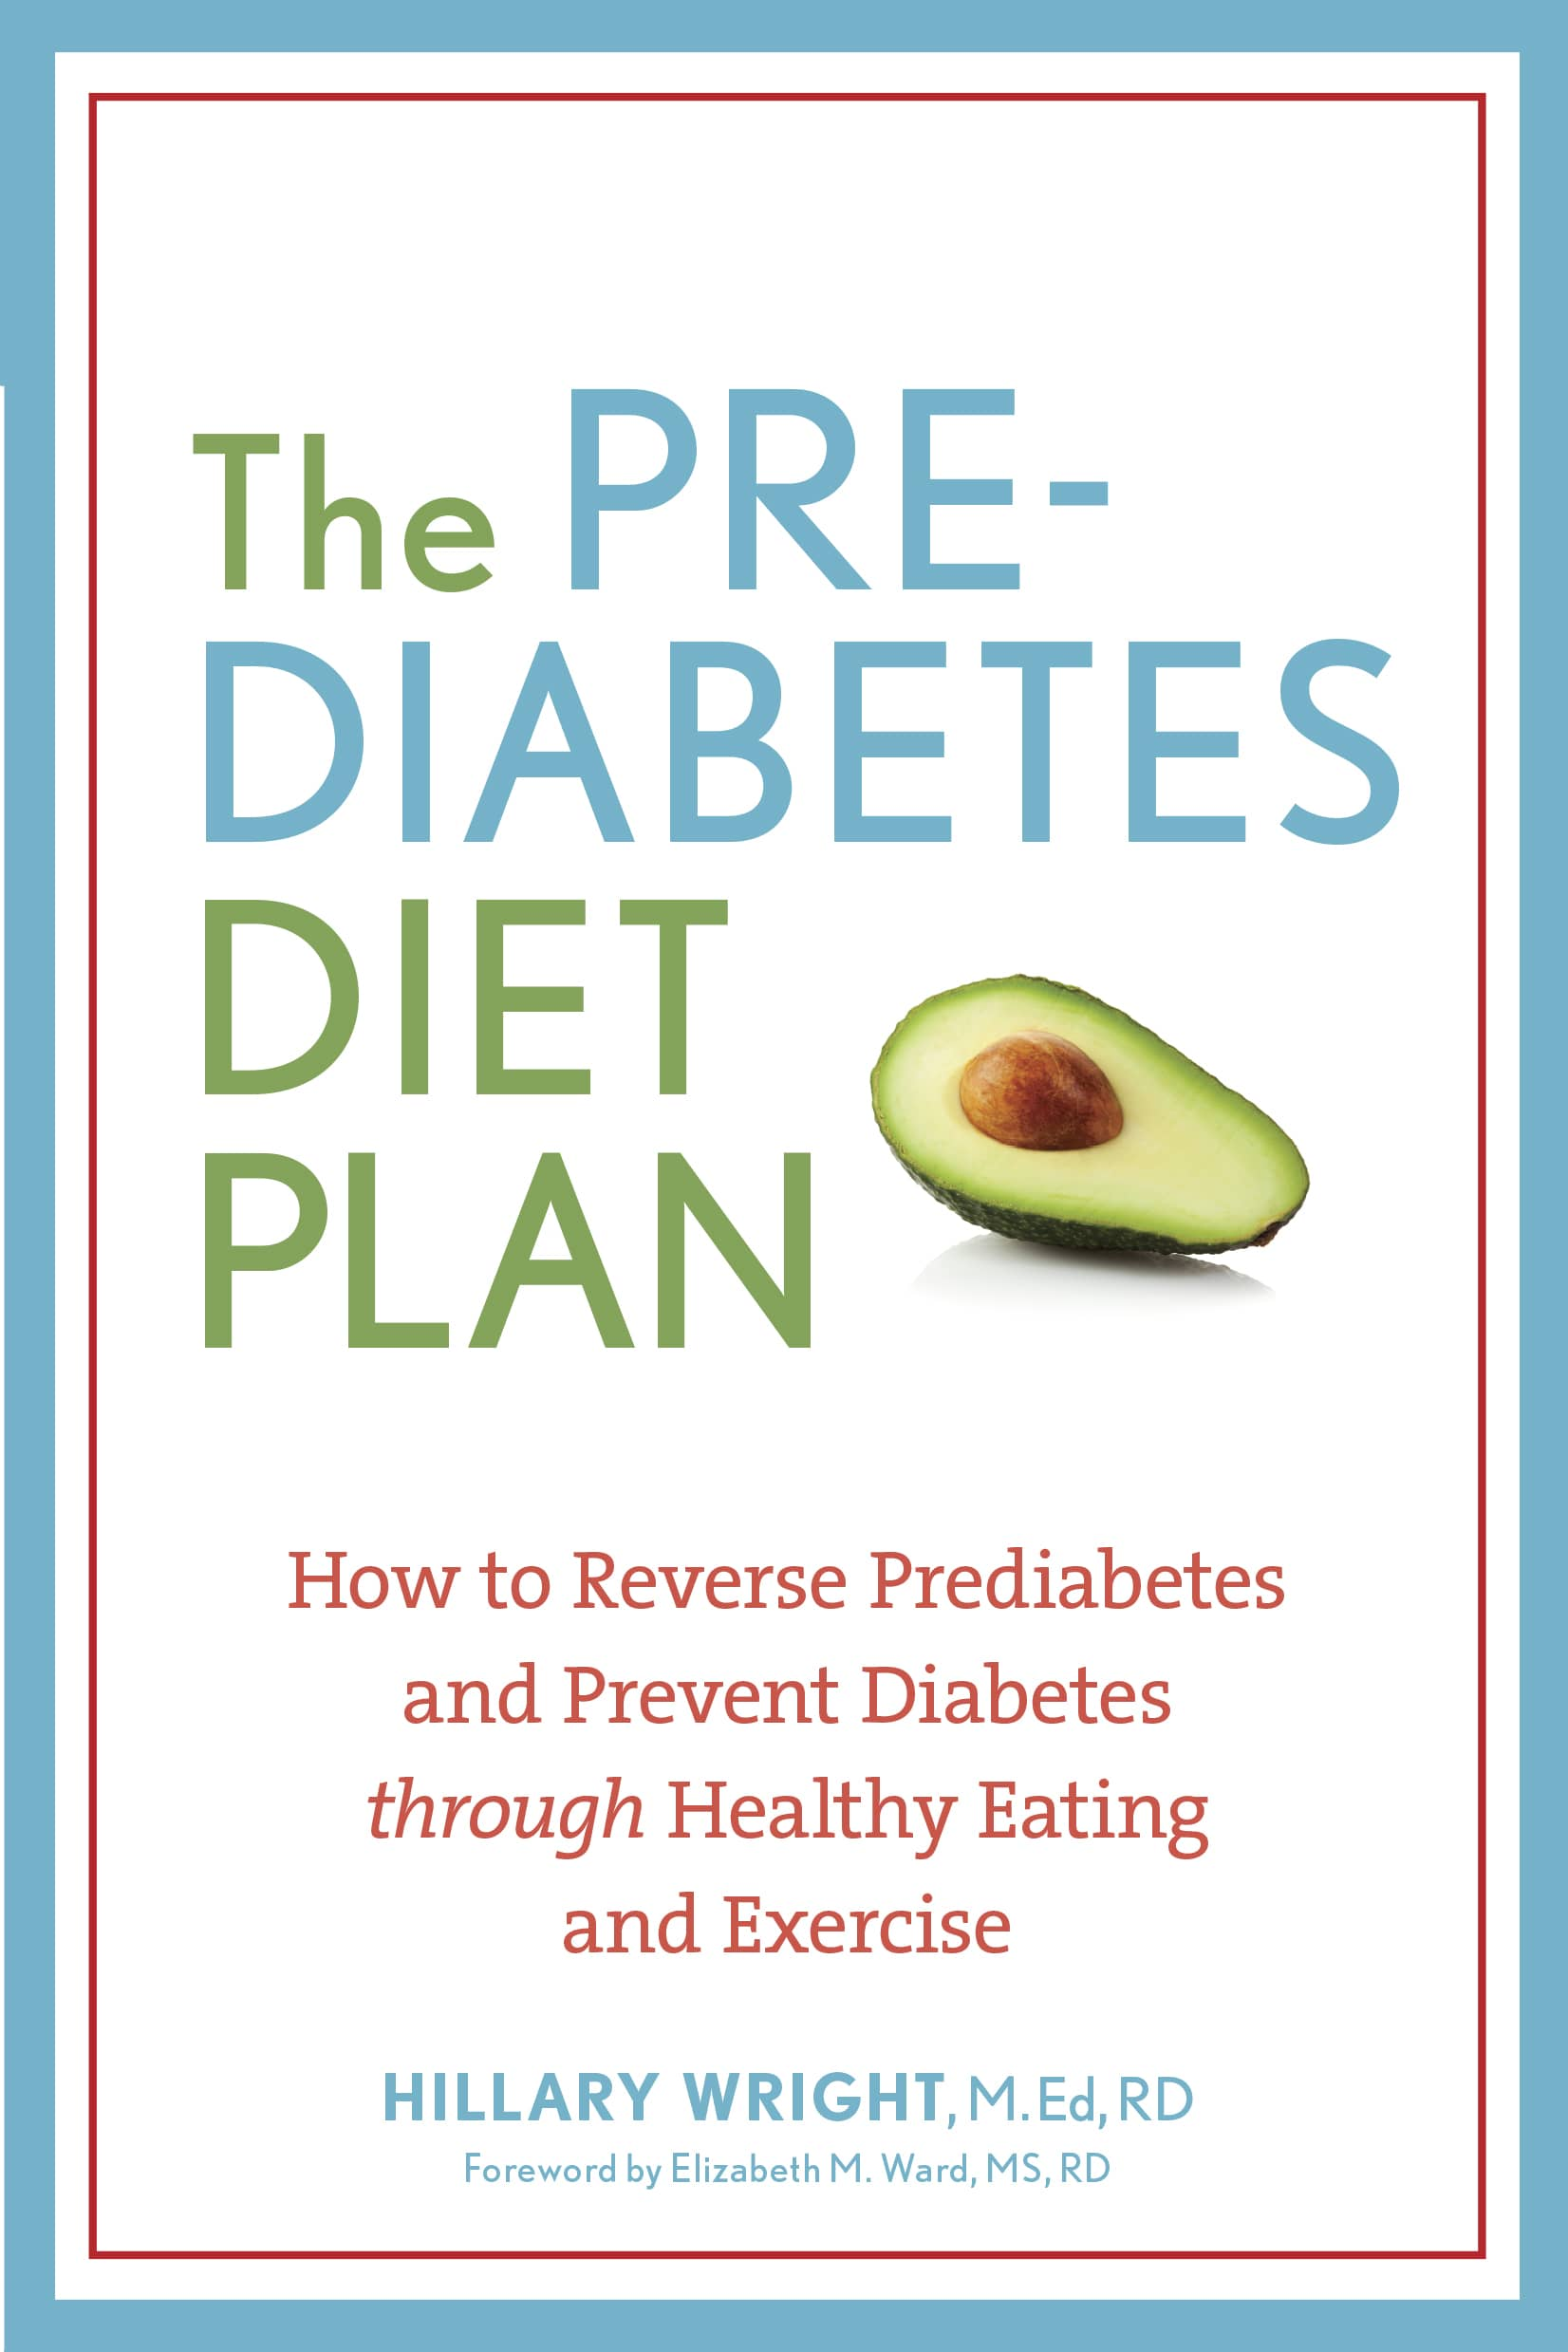 How To Reverse Pre-diabetes And Prevent Diabetes Through